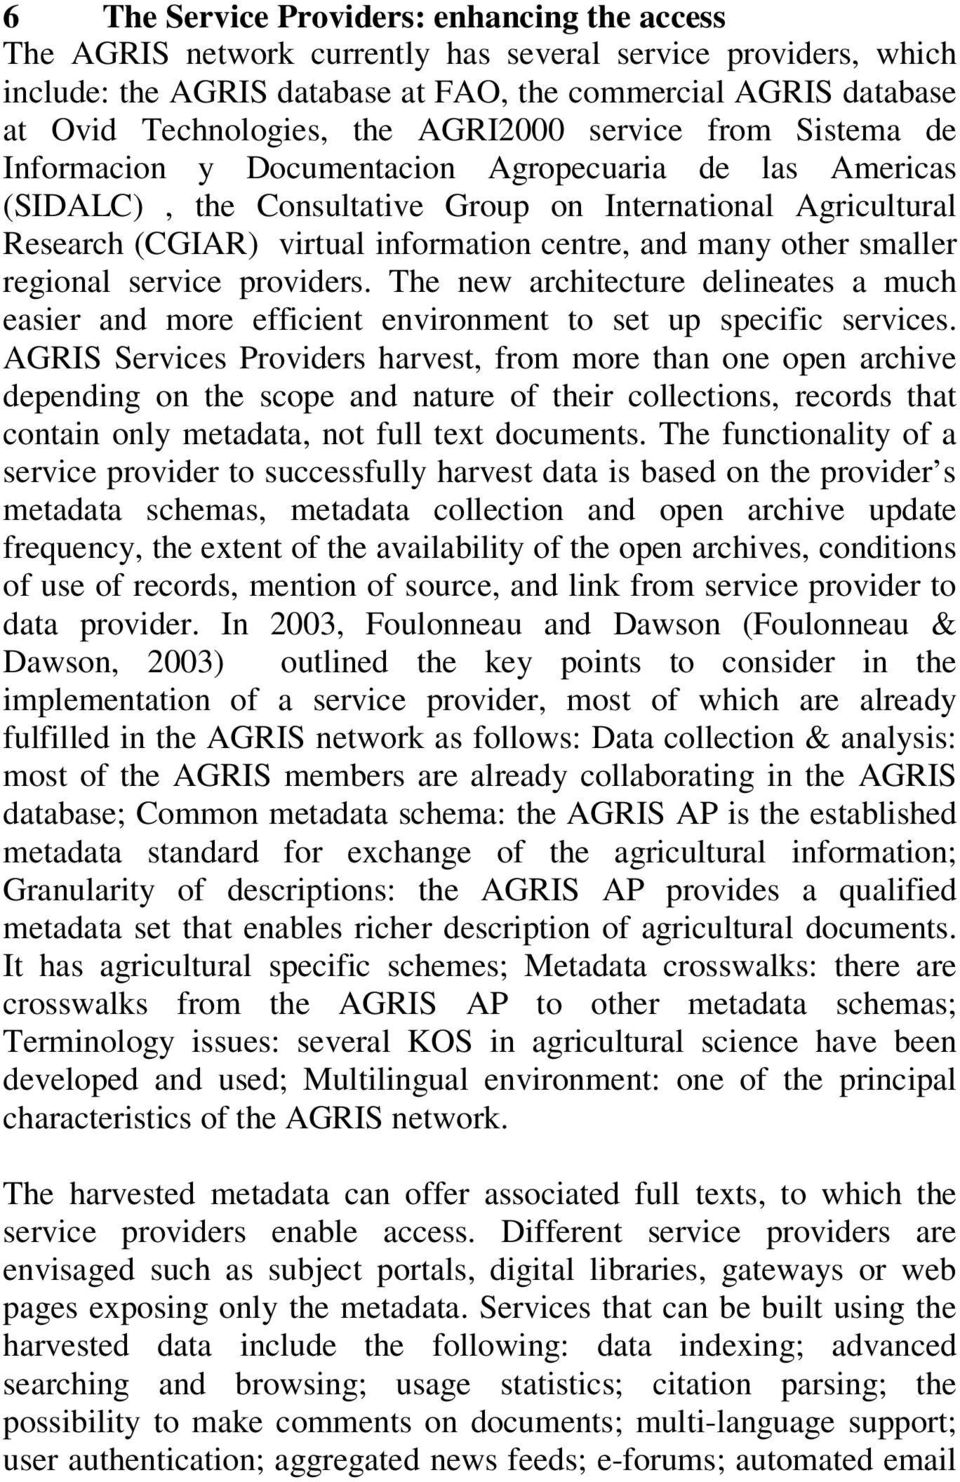 centre, and many other smaller regional service providers. The new architecture delineates a much easier and more efficient environment to set up specific services.